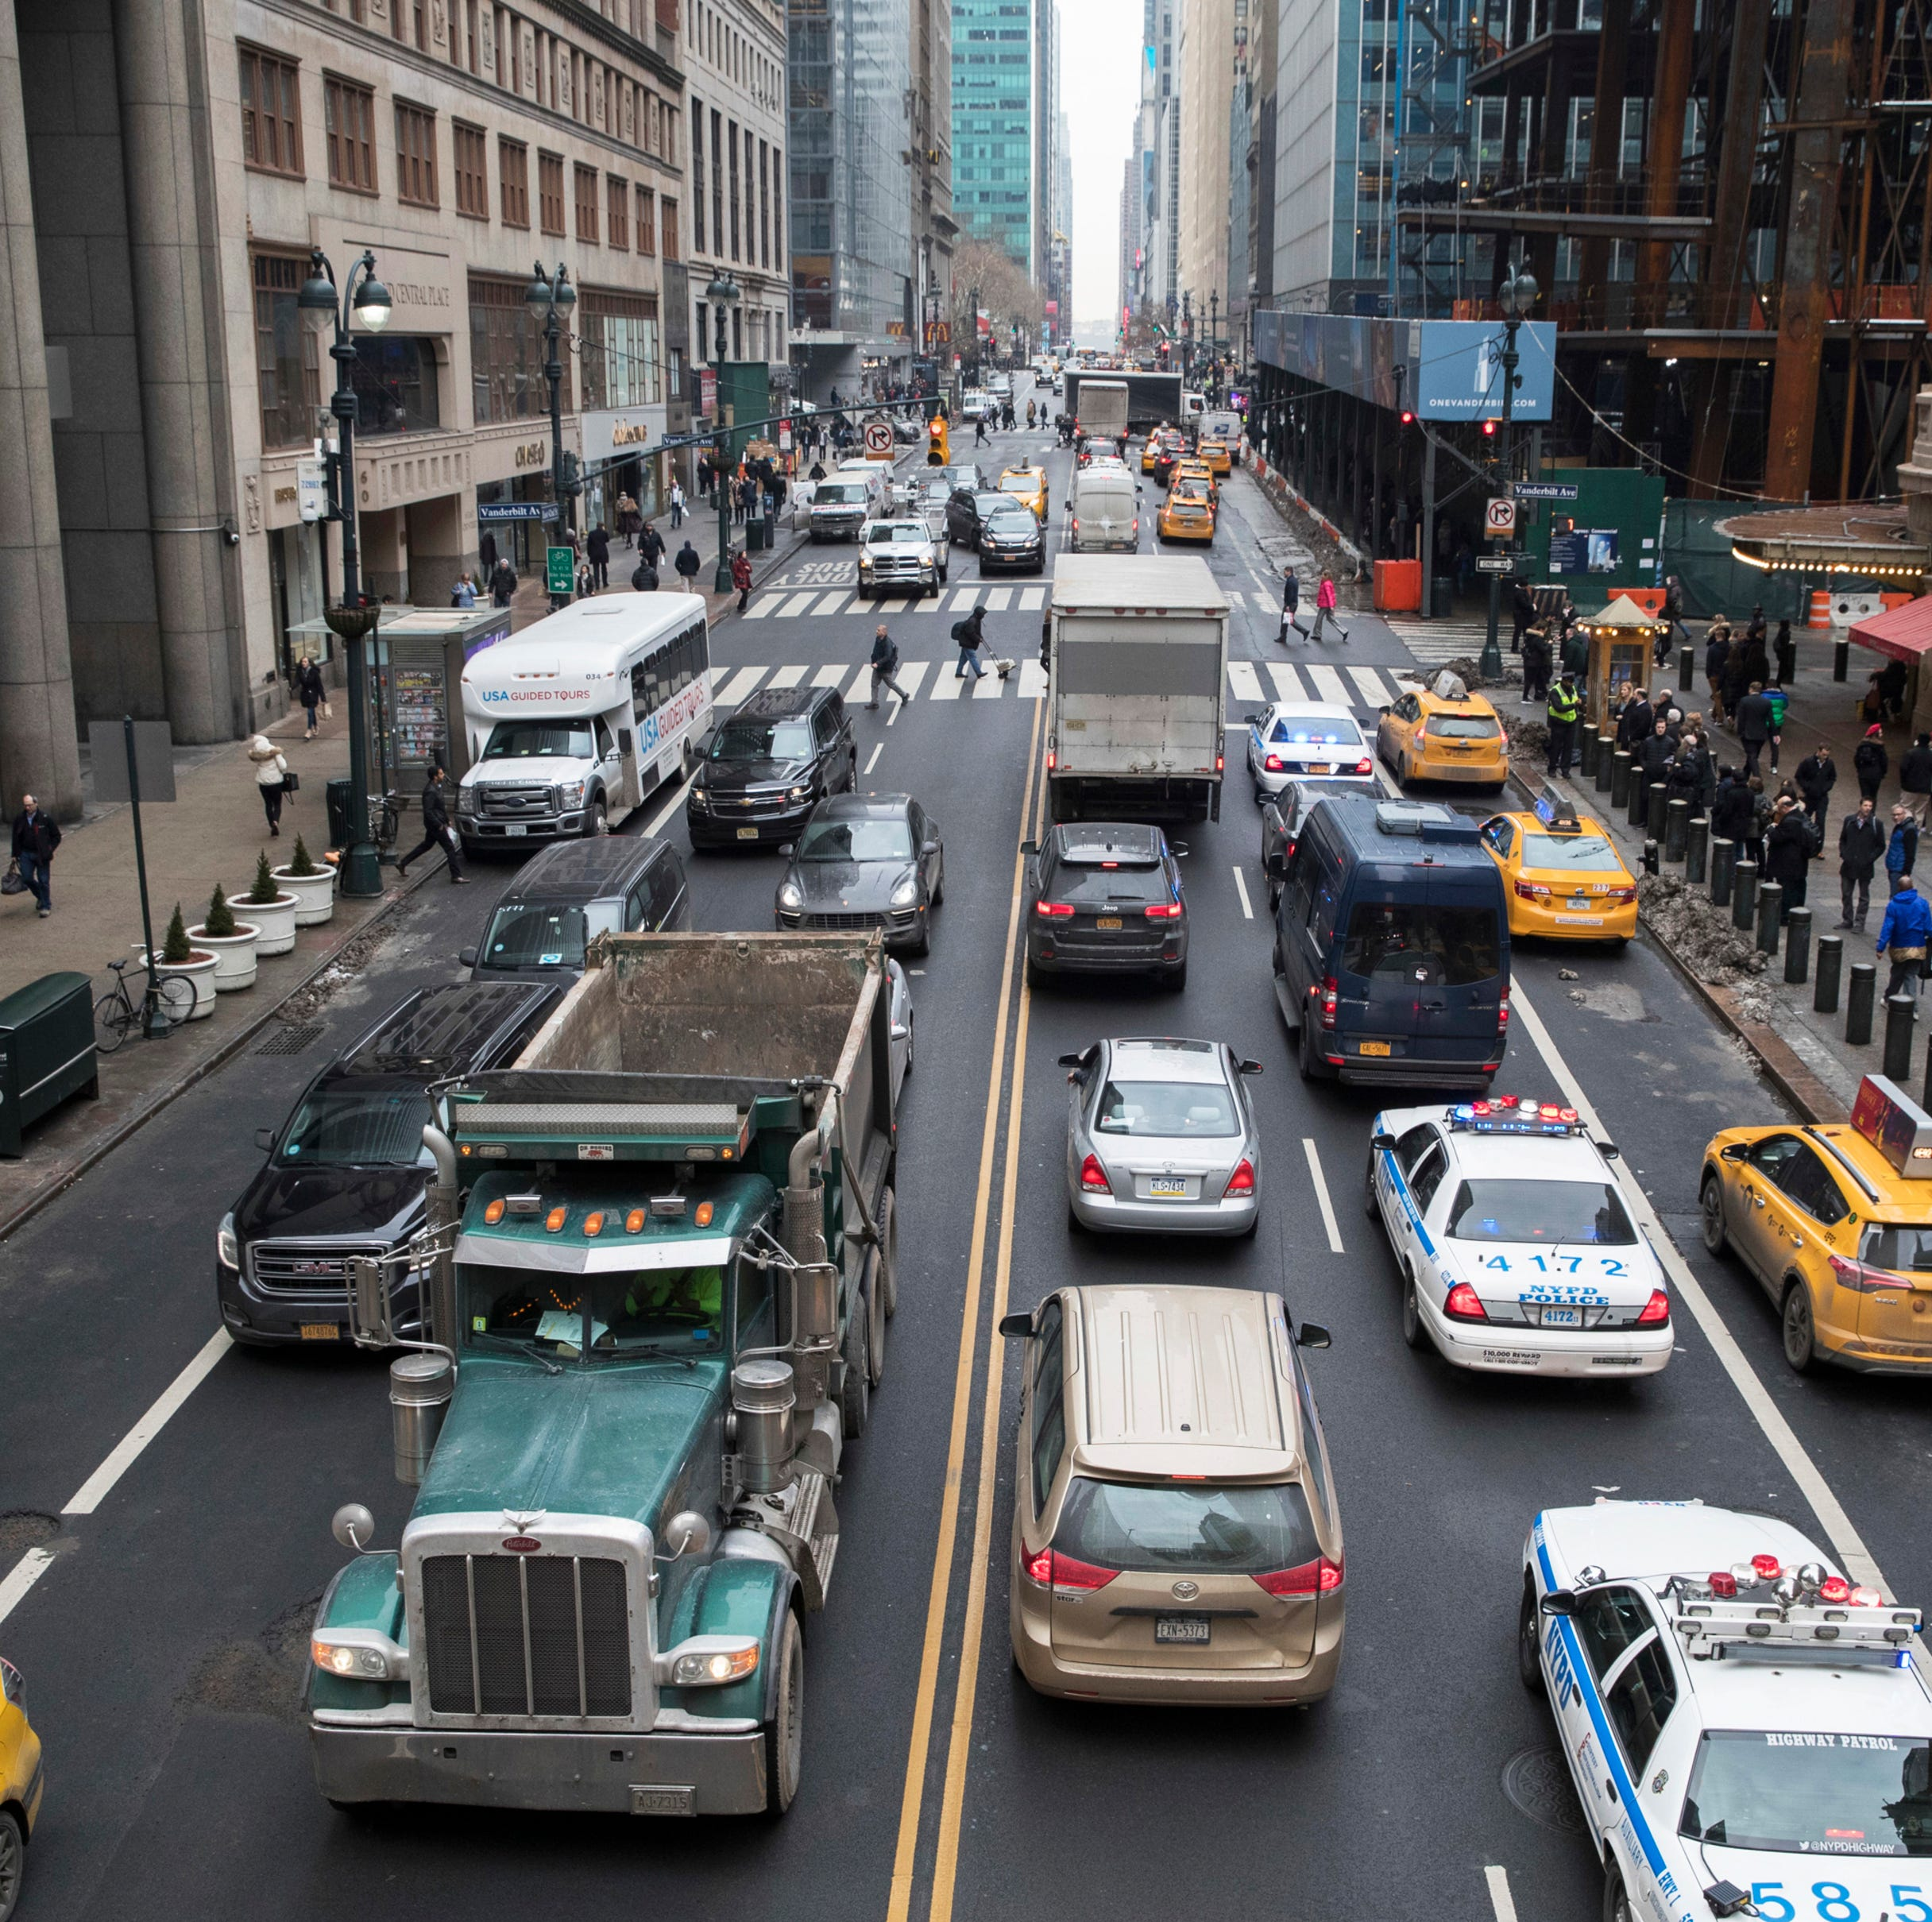 Congestion pricing in New York: What you need to know about the new Manhattan tolls